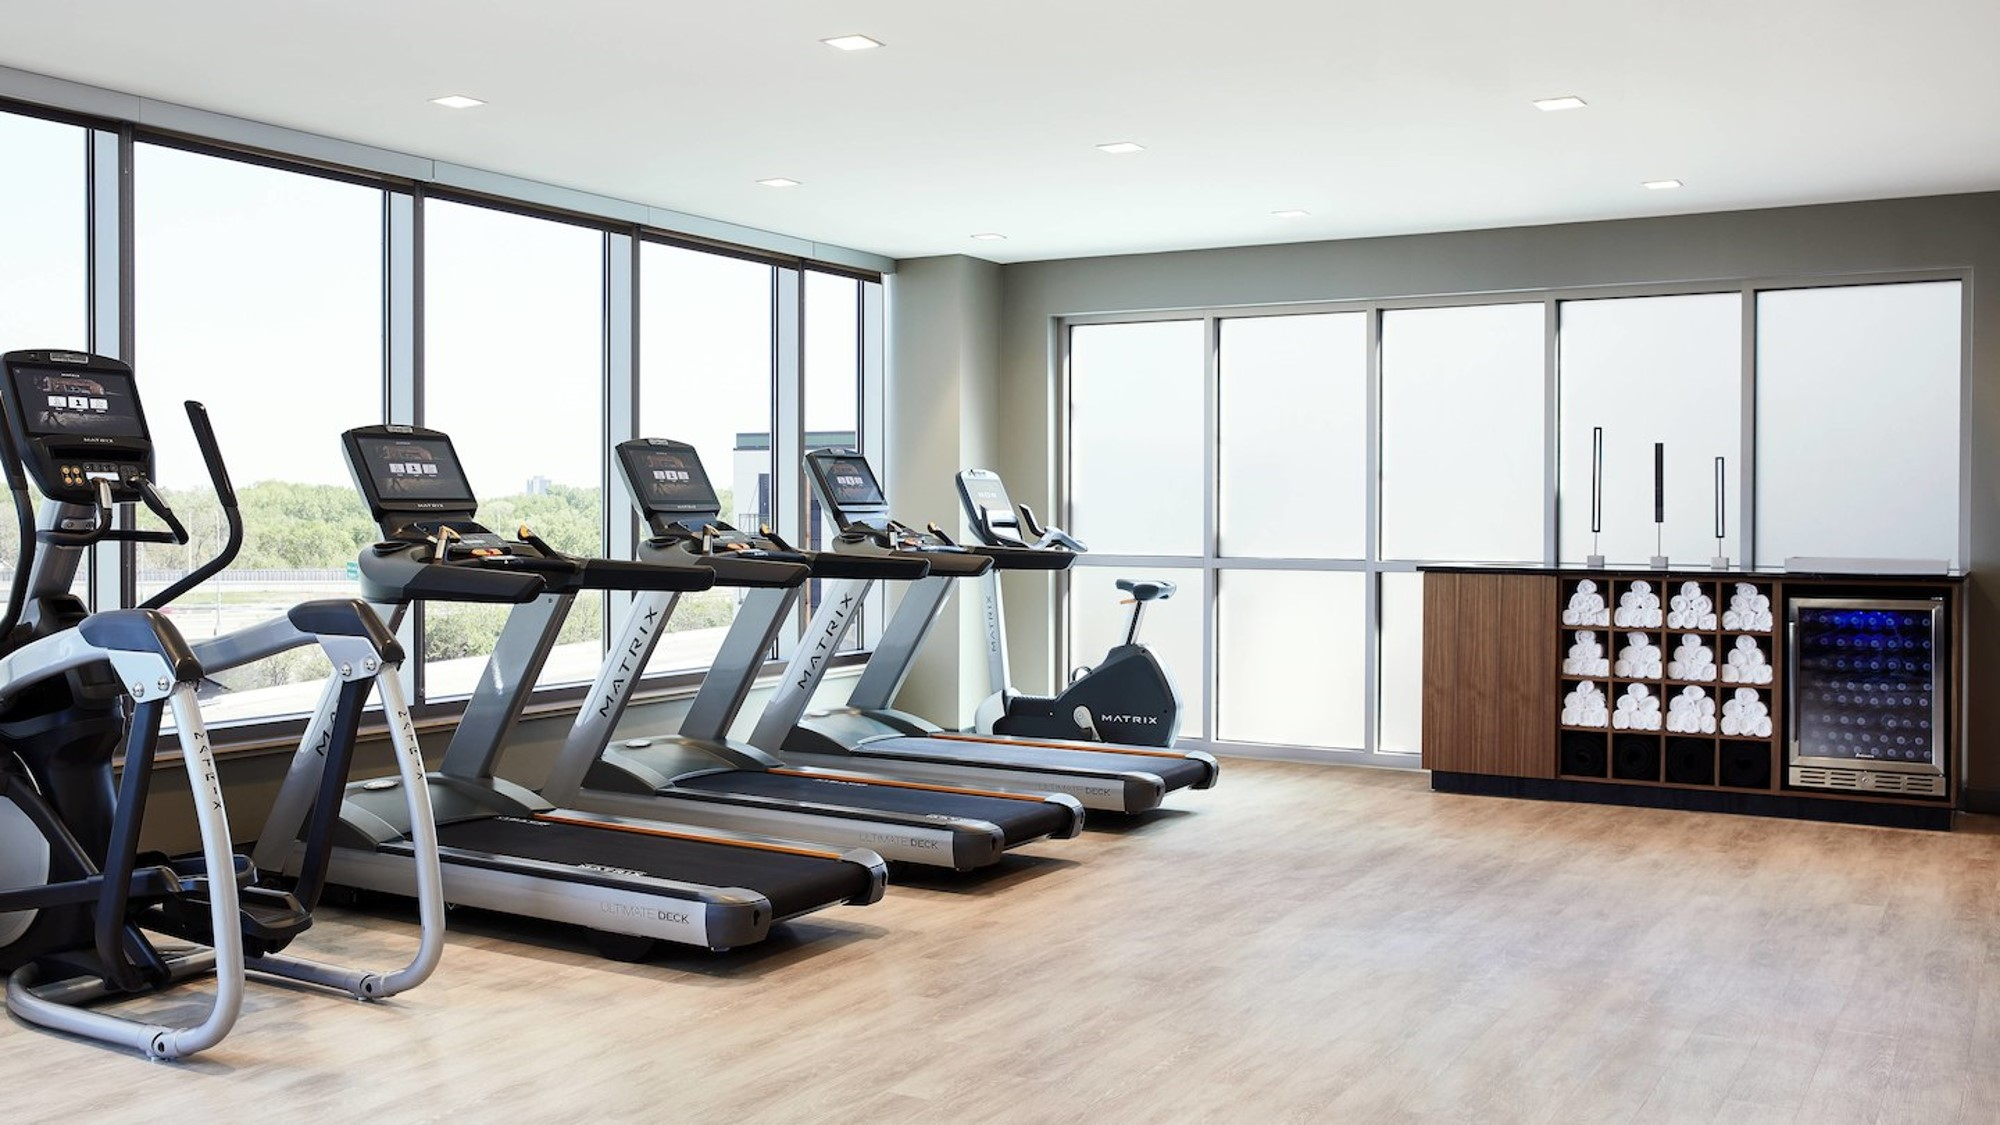 Fitness center in the AC by Marriott in St. Louis Park, MN